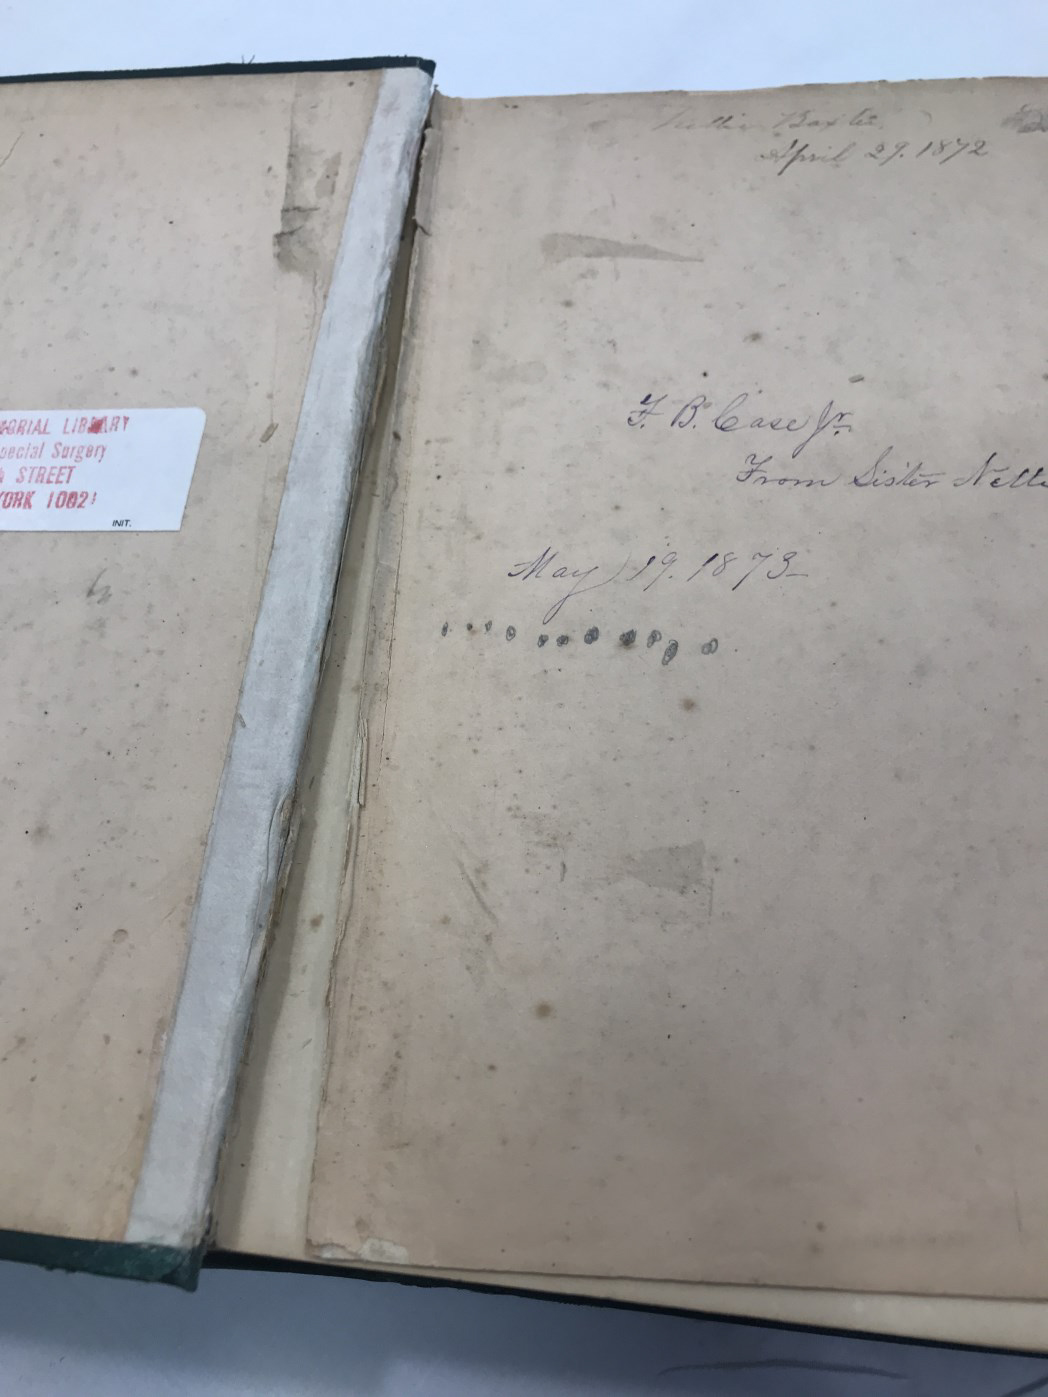 damage to inside cover of Richmond's book